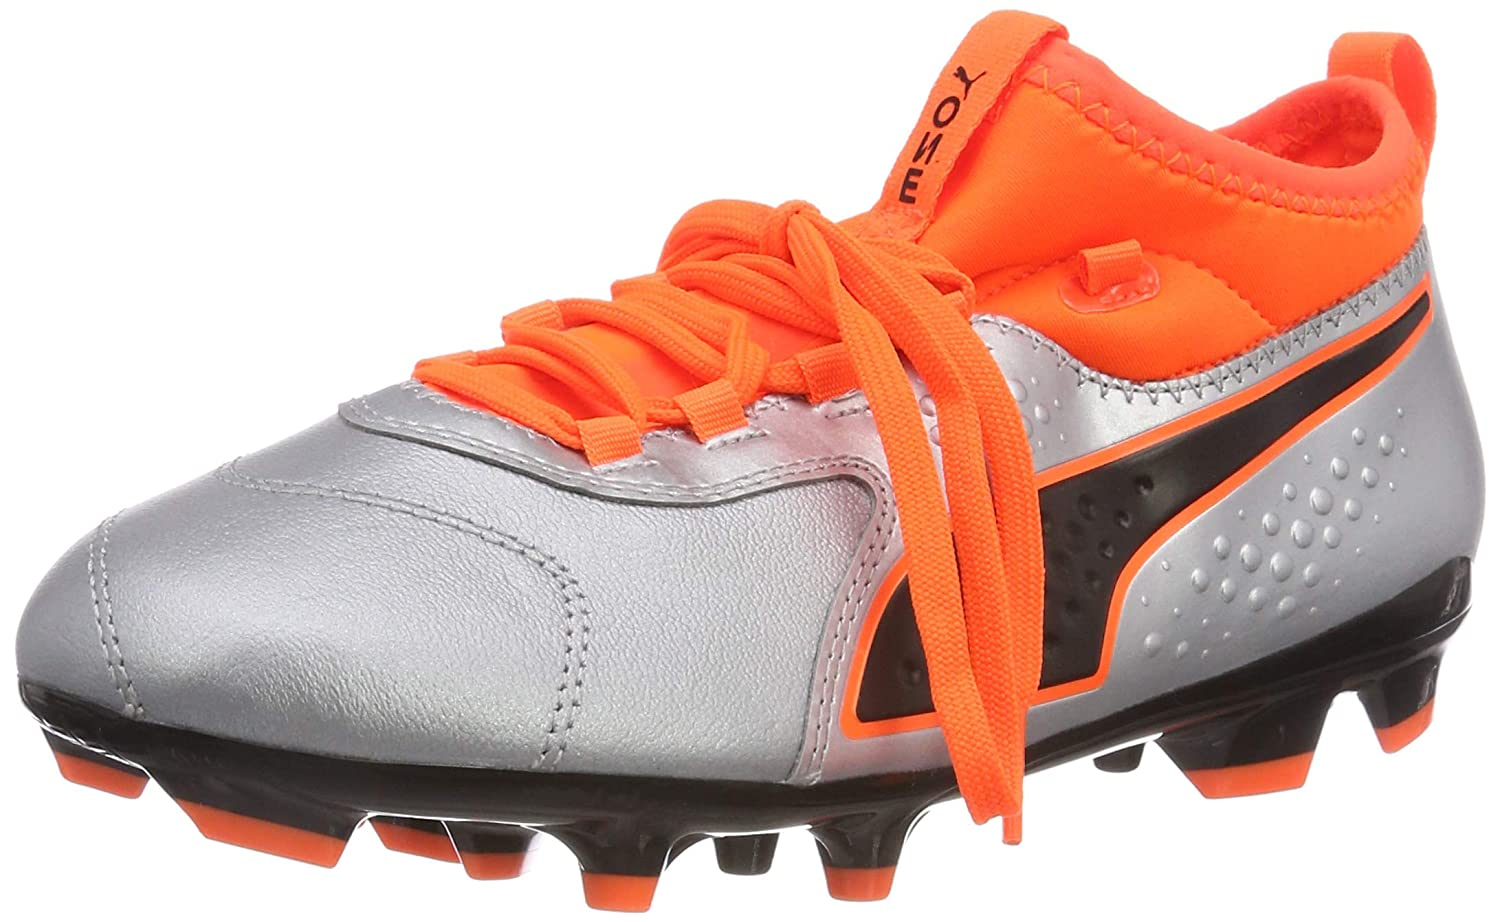 Puma One 3 LTH AG Jr, Zapatillas de Fútbol Unisex Niños 32 EU|Plateado (Puma Silver-shocking Orange-puma Black 01)